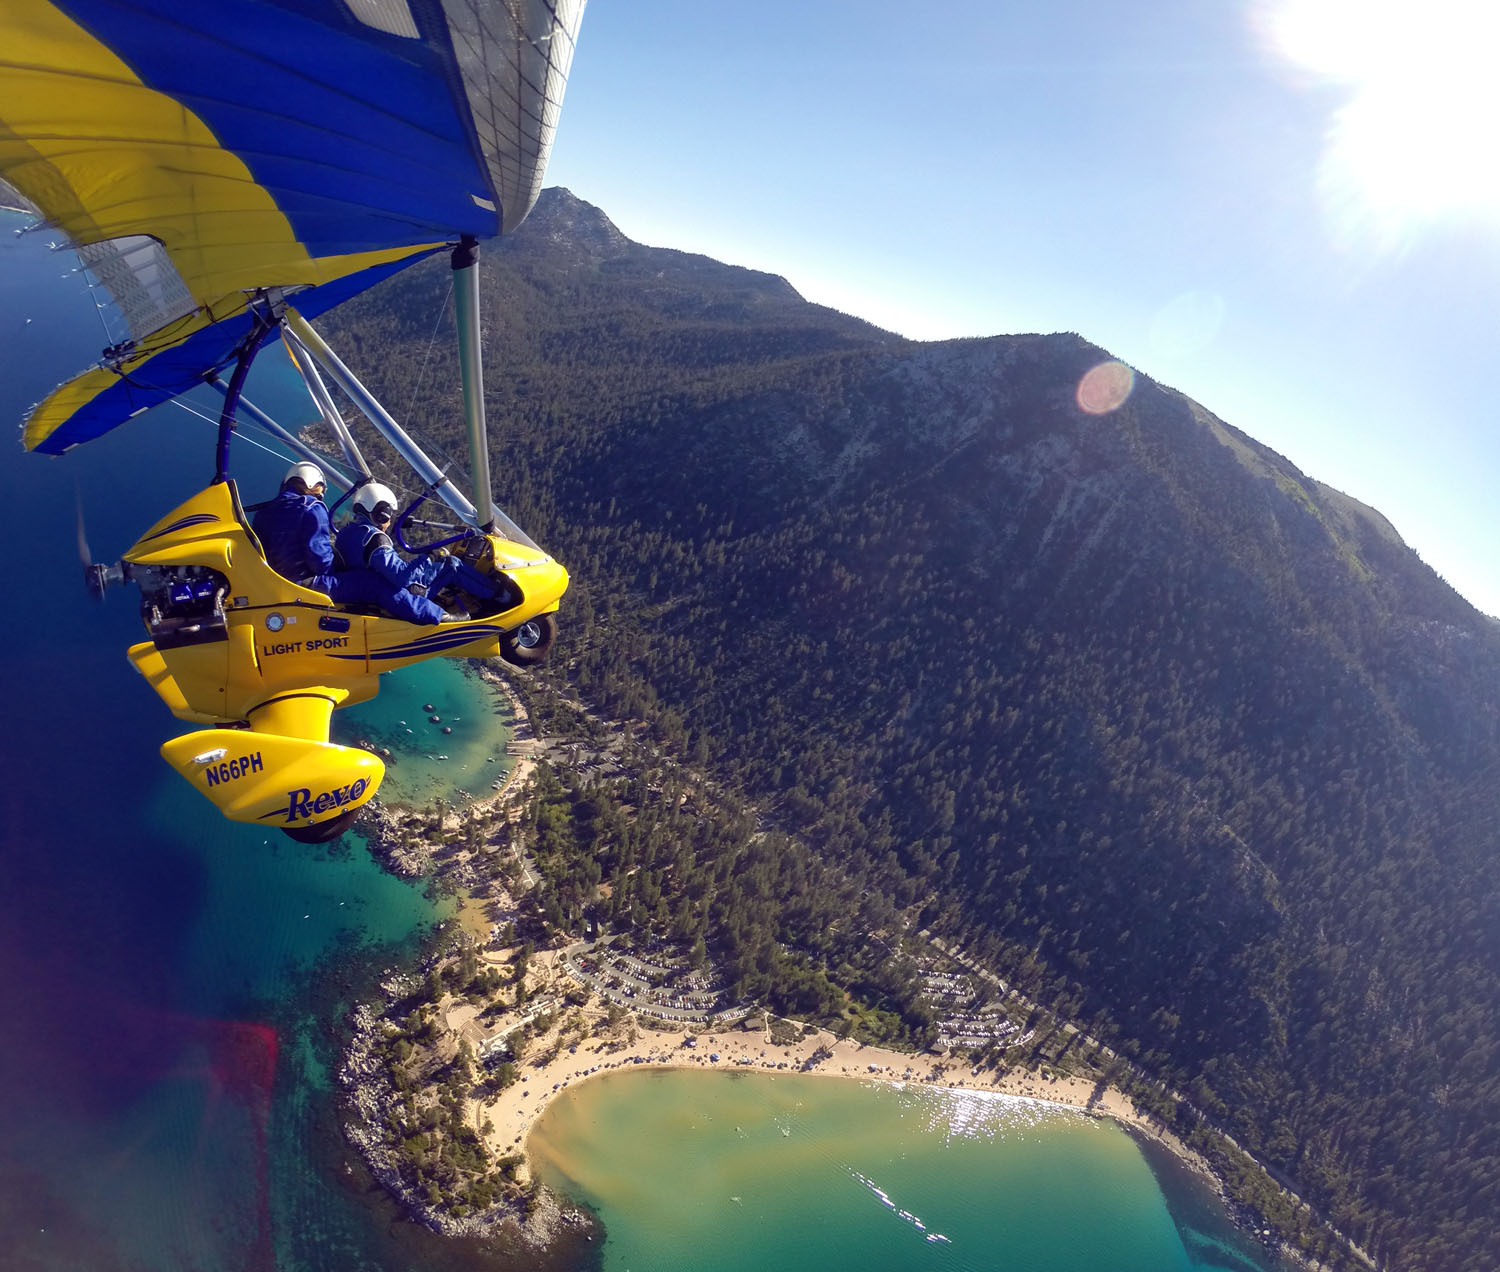 Hang Gliding Above Zephyr Cove